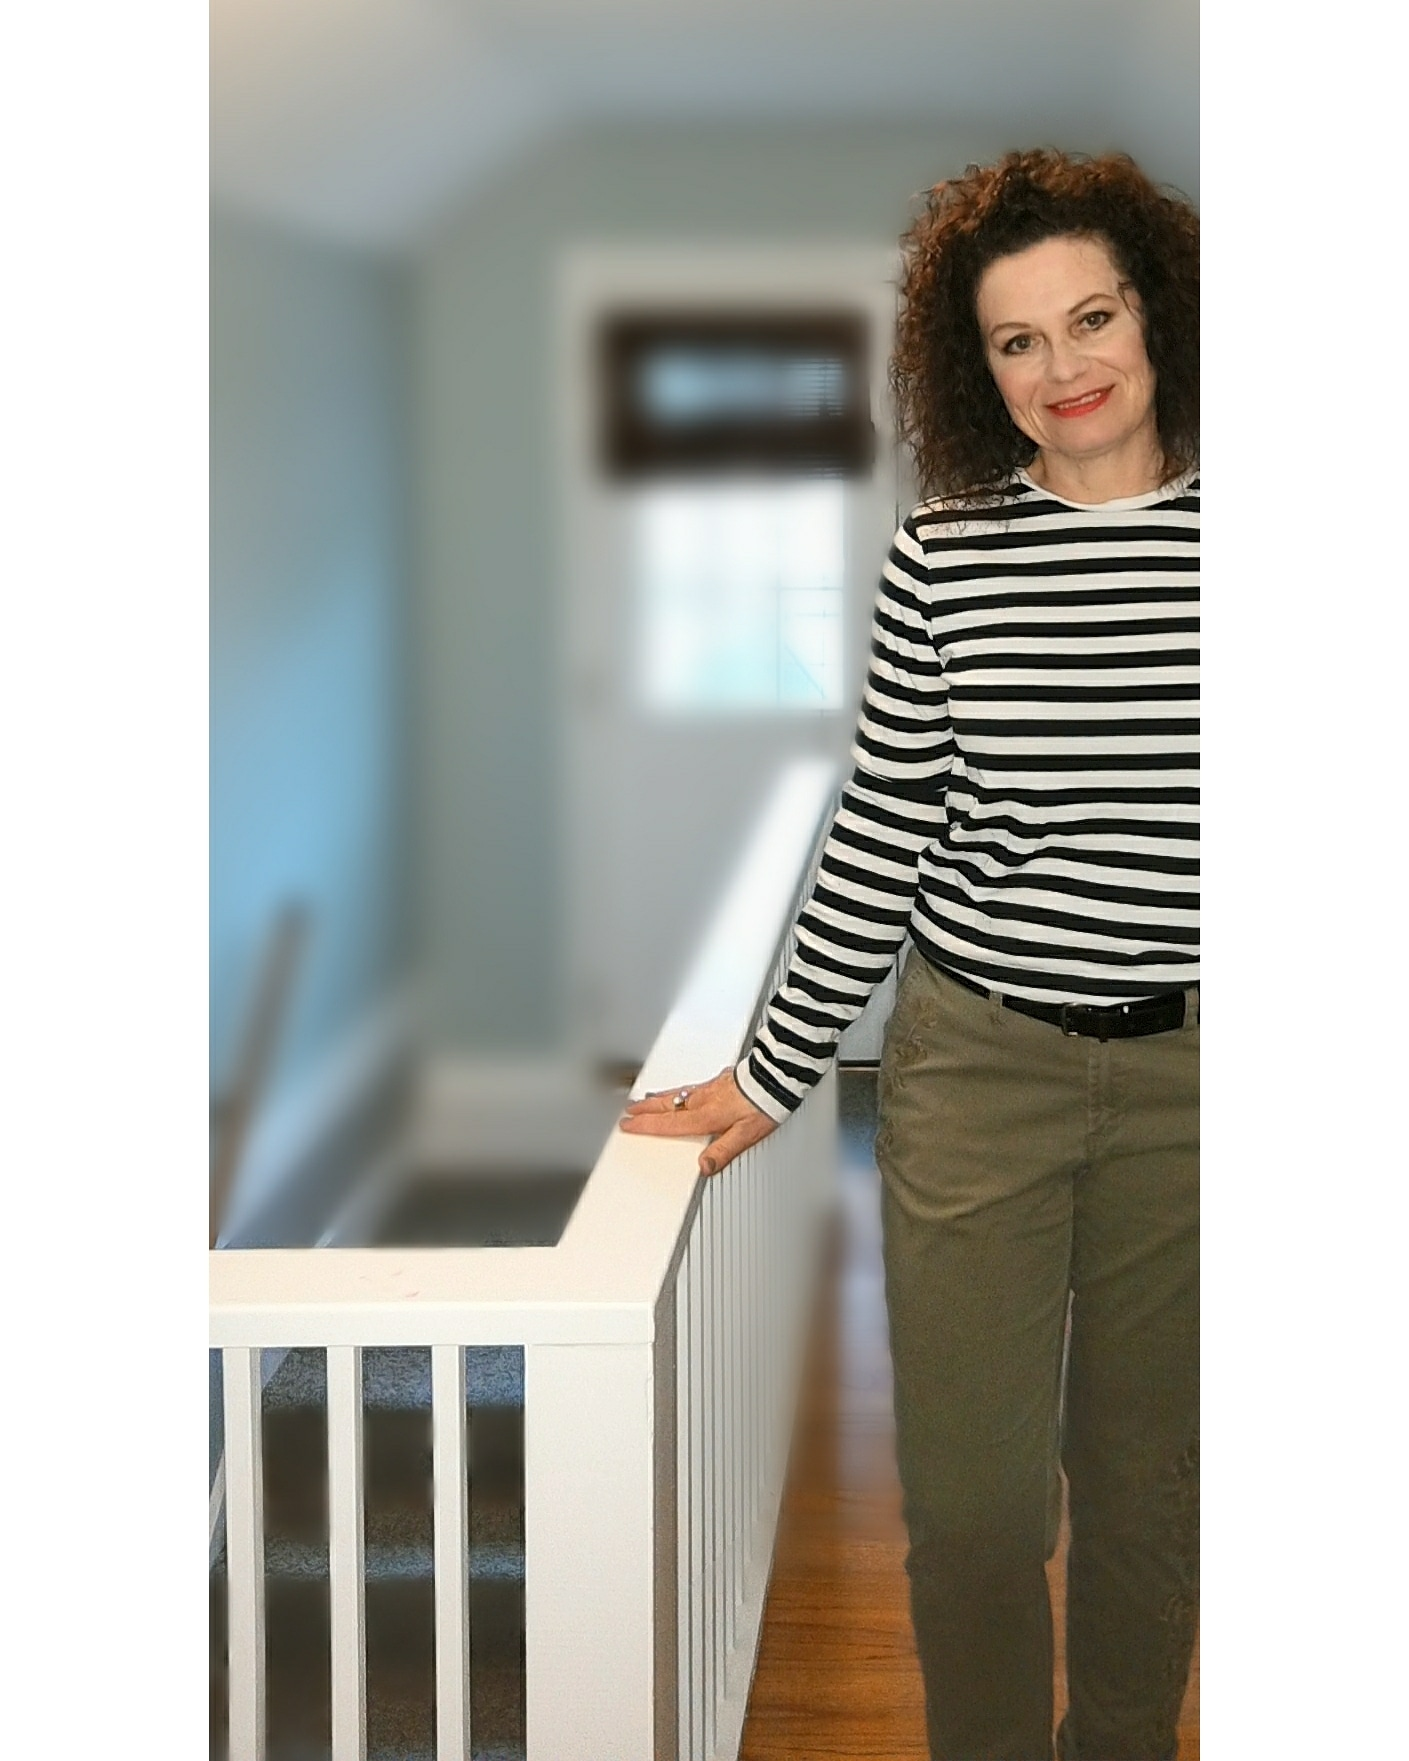 Stripes - Stripes are one of those patterns I don't go to very often. In this case, I raided my college-age son's give away pile and decided to keep the shirt for myself. I paired it with a great pair of khakis I purchased last fall from the